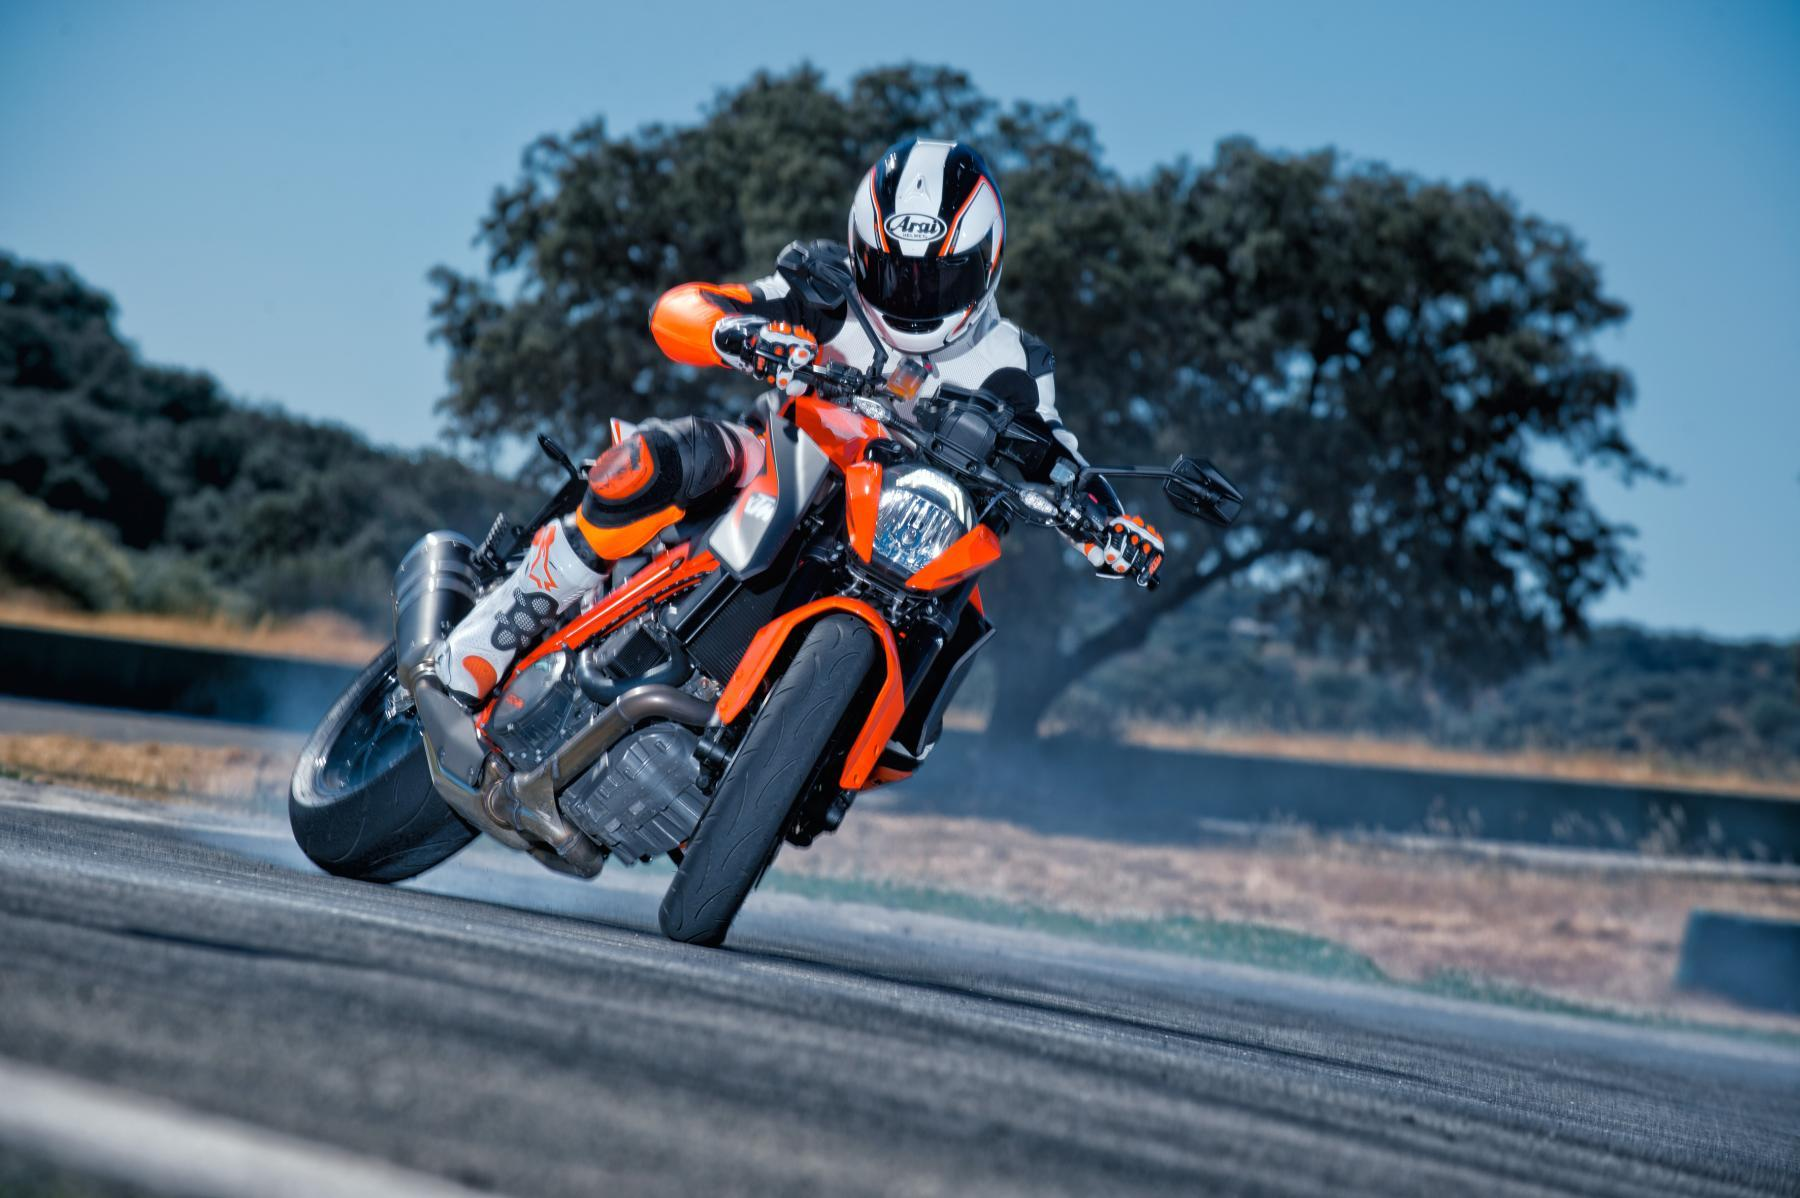 ktm 1290 super duke r action fotos motorrad fotos motorrad bilder. Black Bedroom Furniture Sets. Home Design Ideas